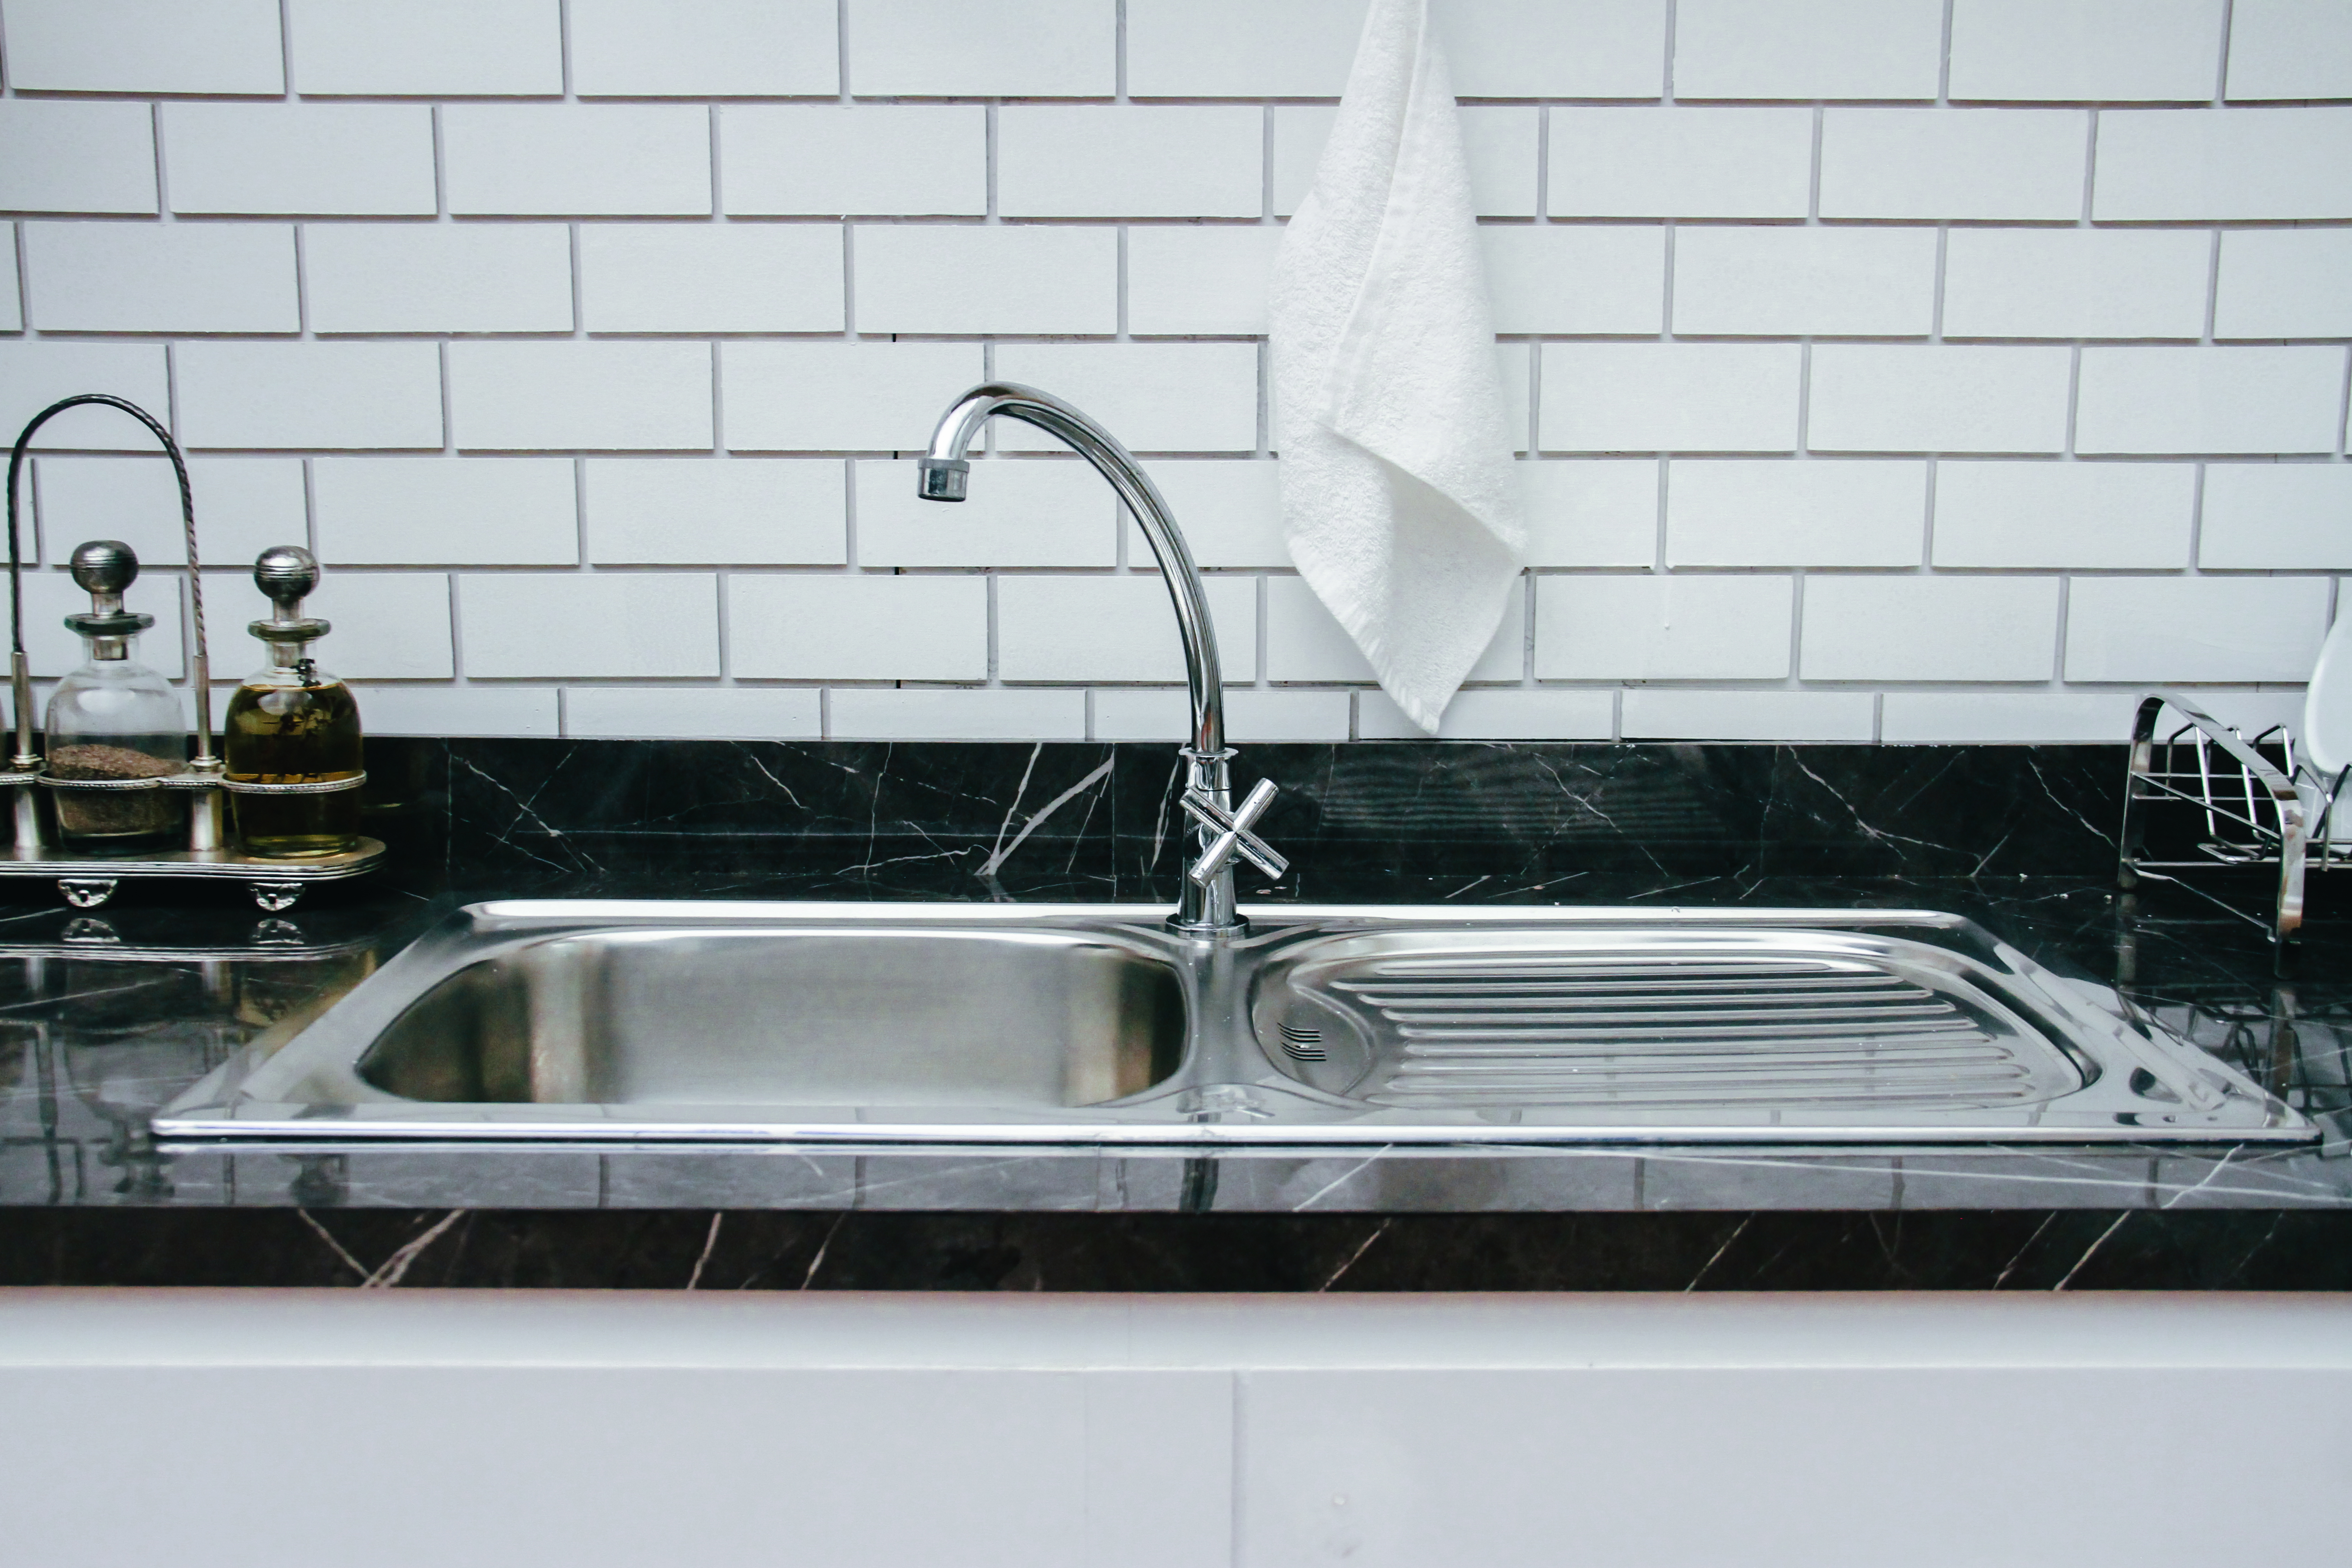 How To Fix A Leak On A Glacier Bay Kitchen Faucet Hunker